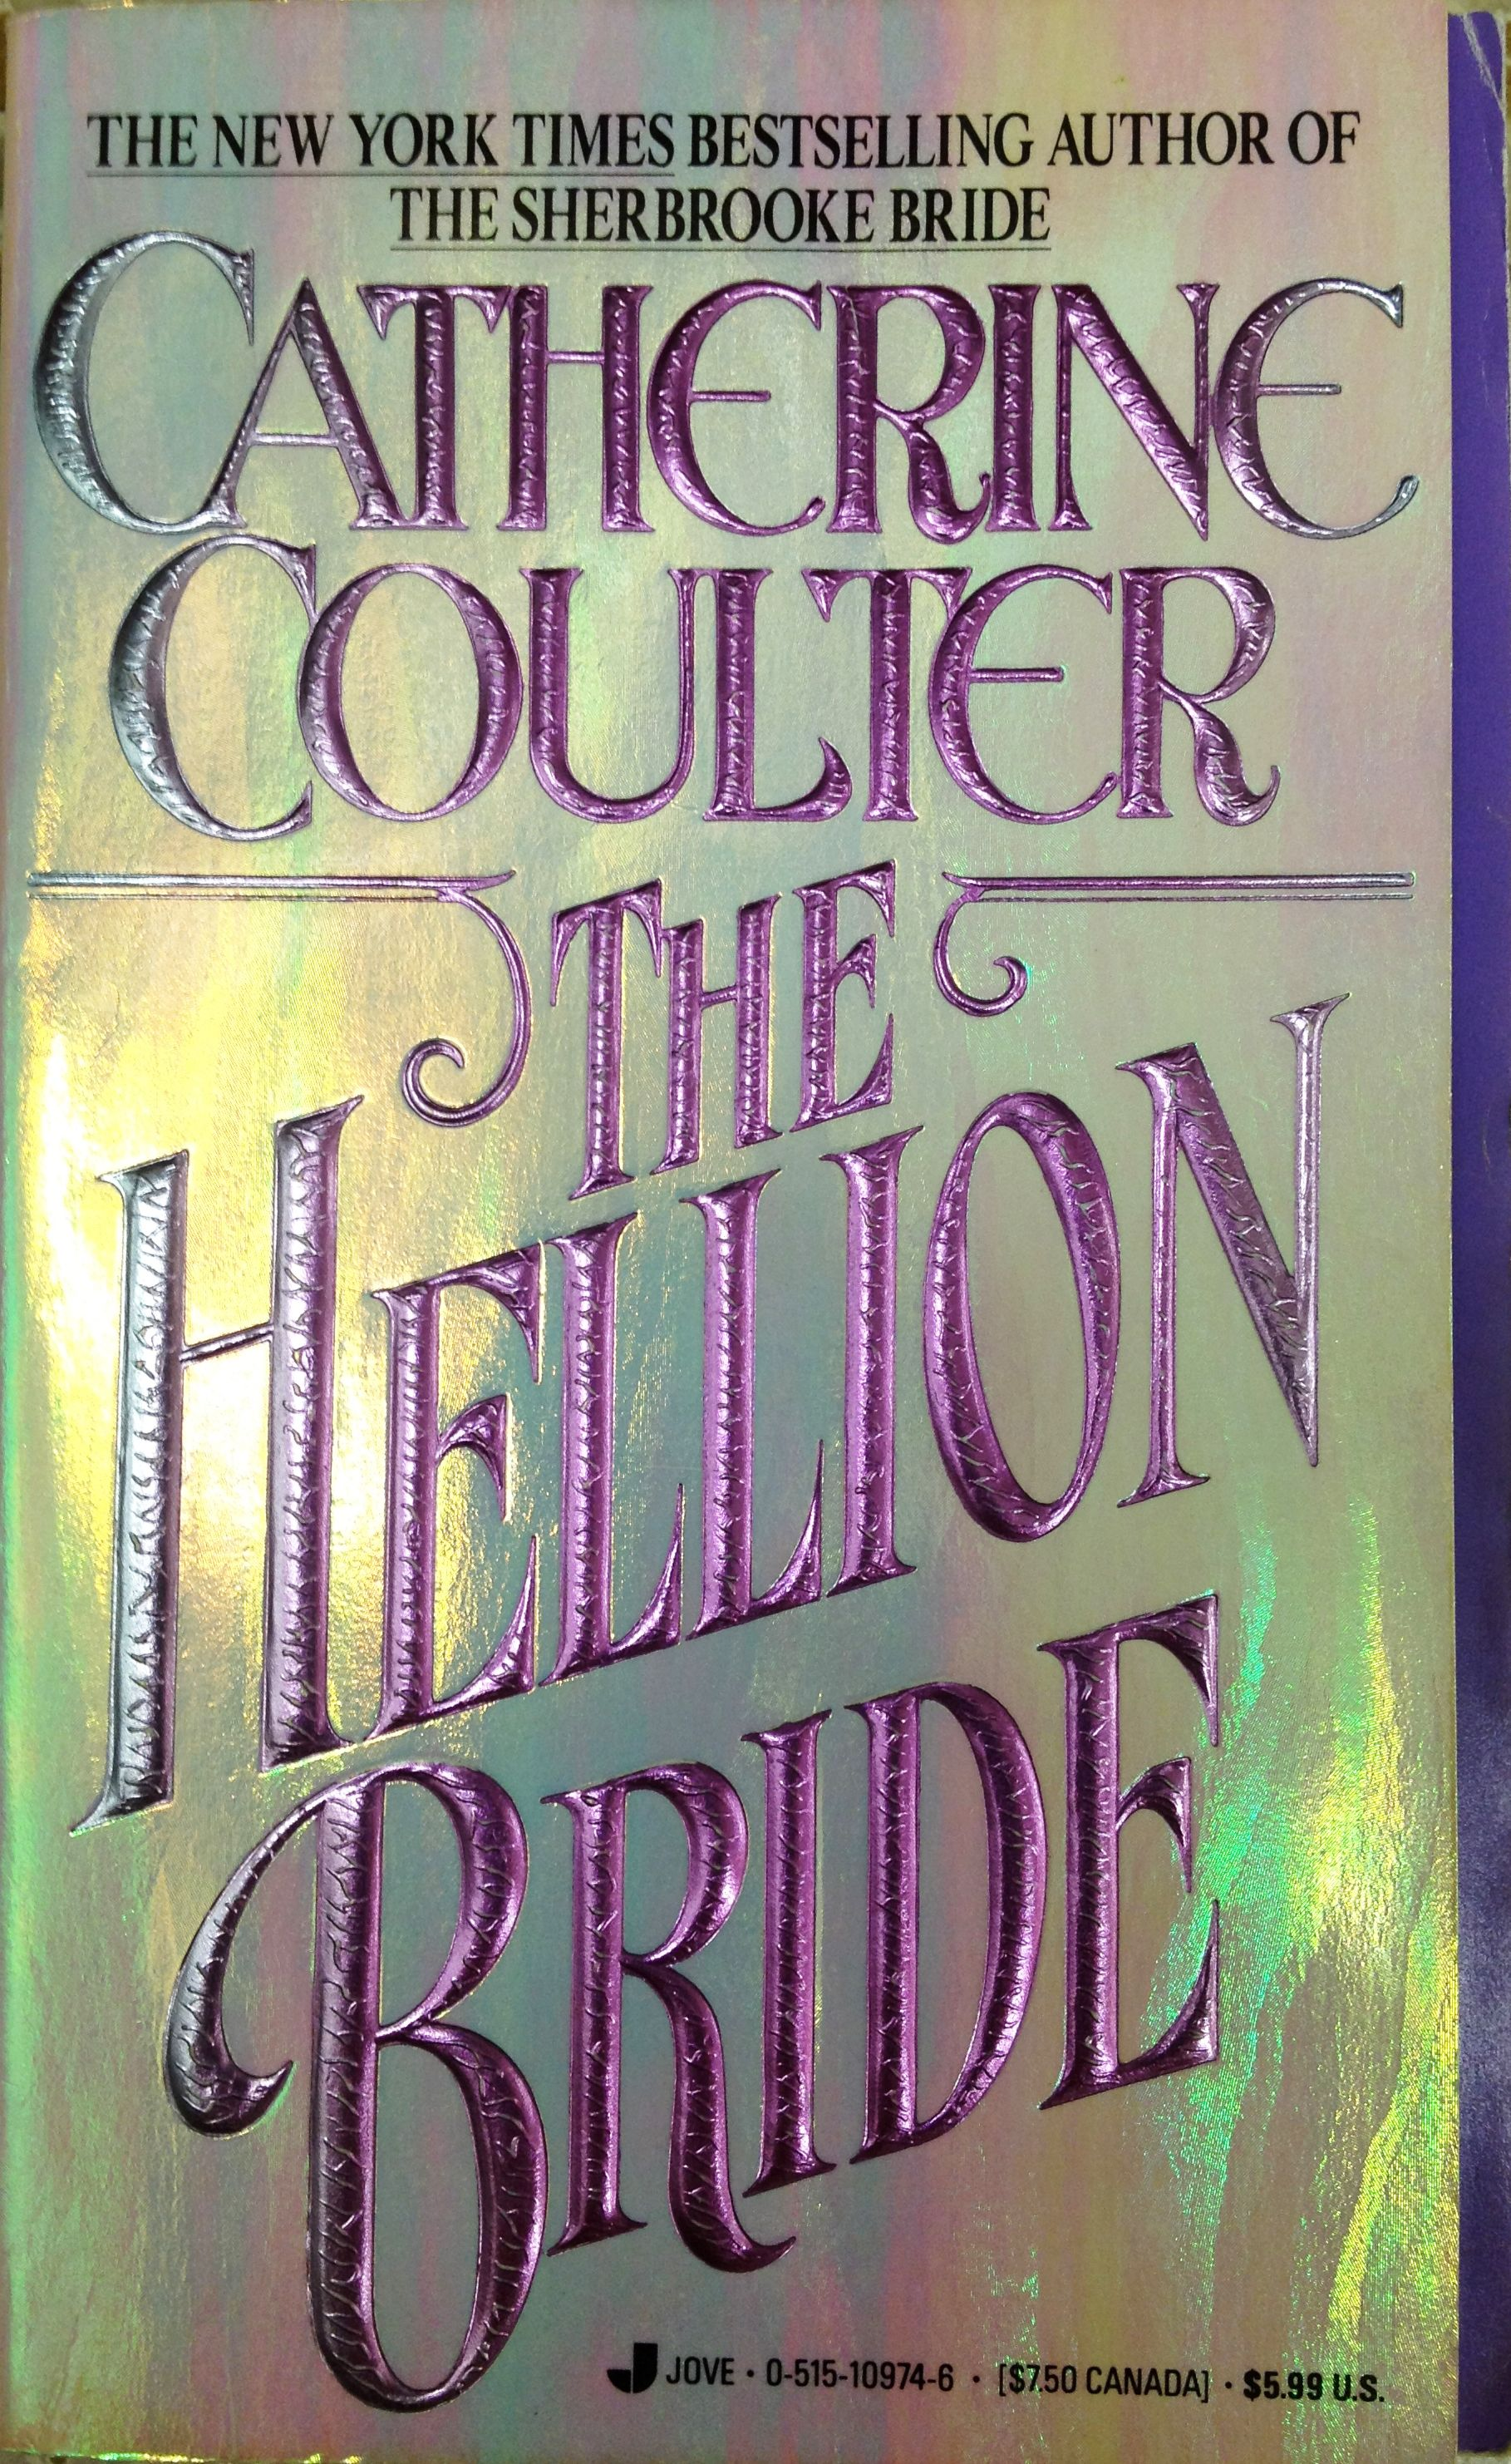 Catherine Coulter Libros The Hellion Bride Catherine Coulter Magazine Book Album Covers